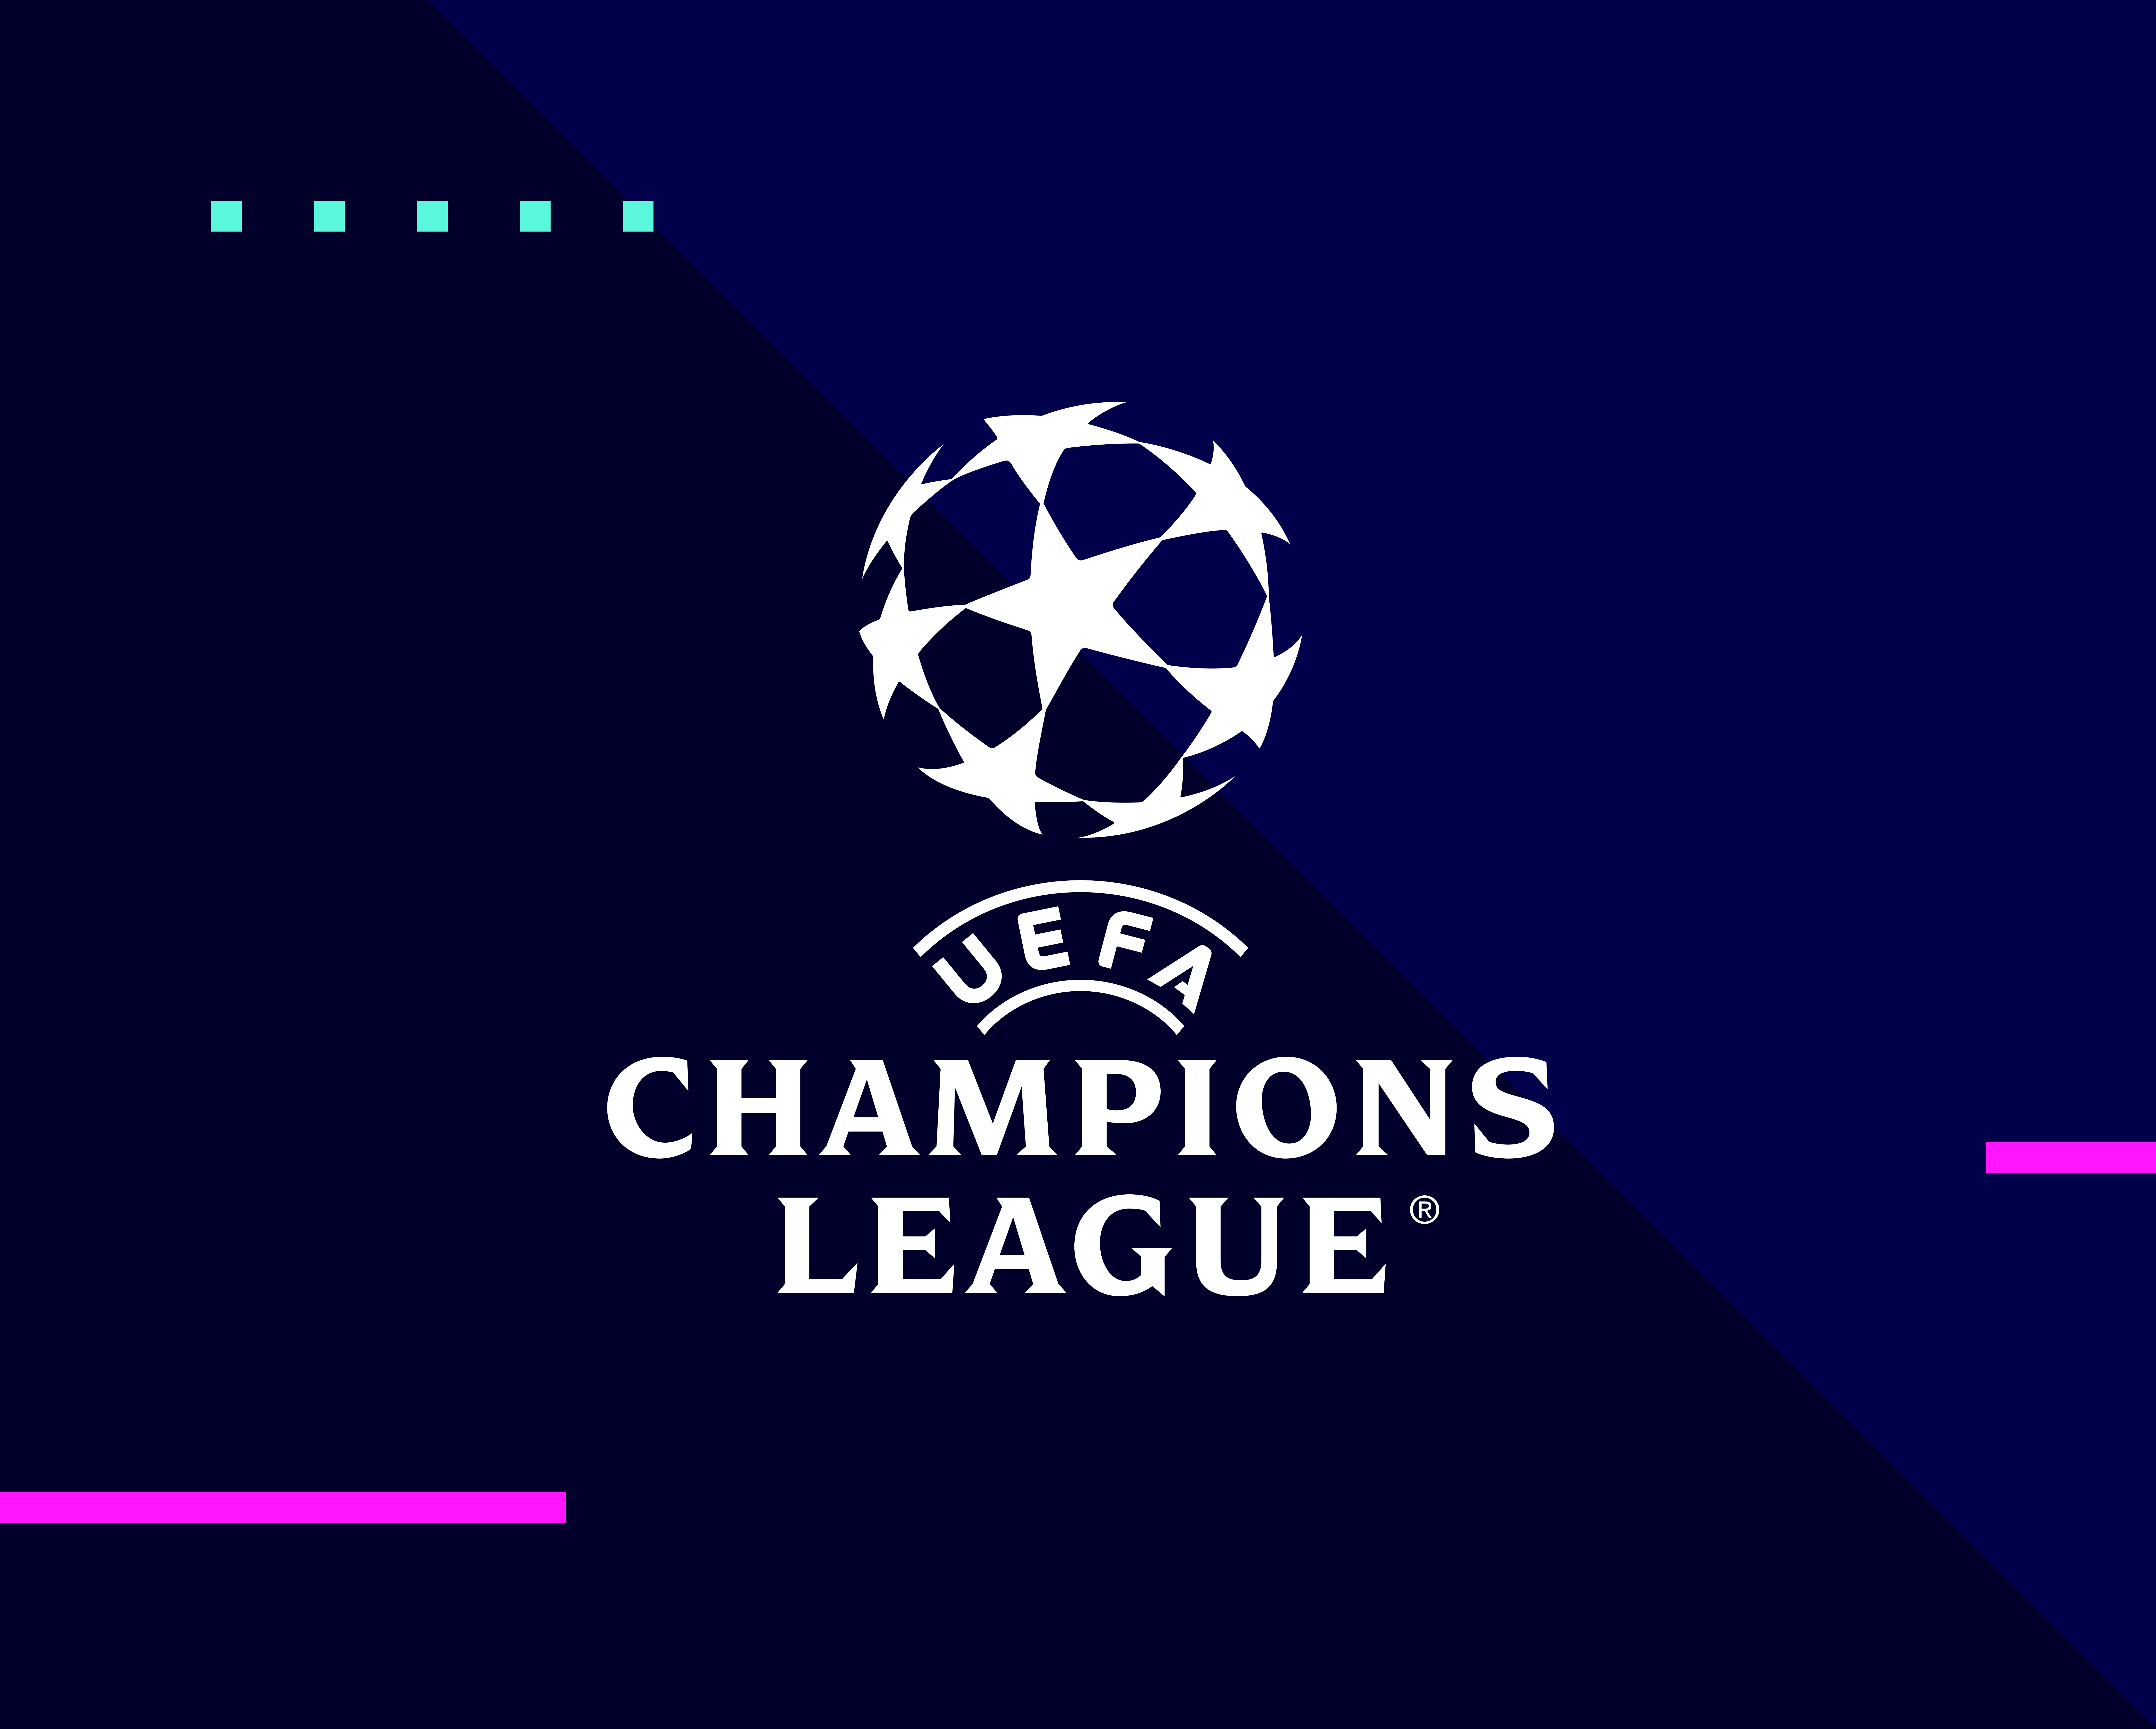 champions league games on tv usa